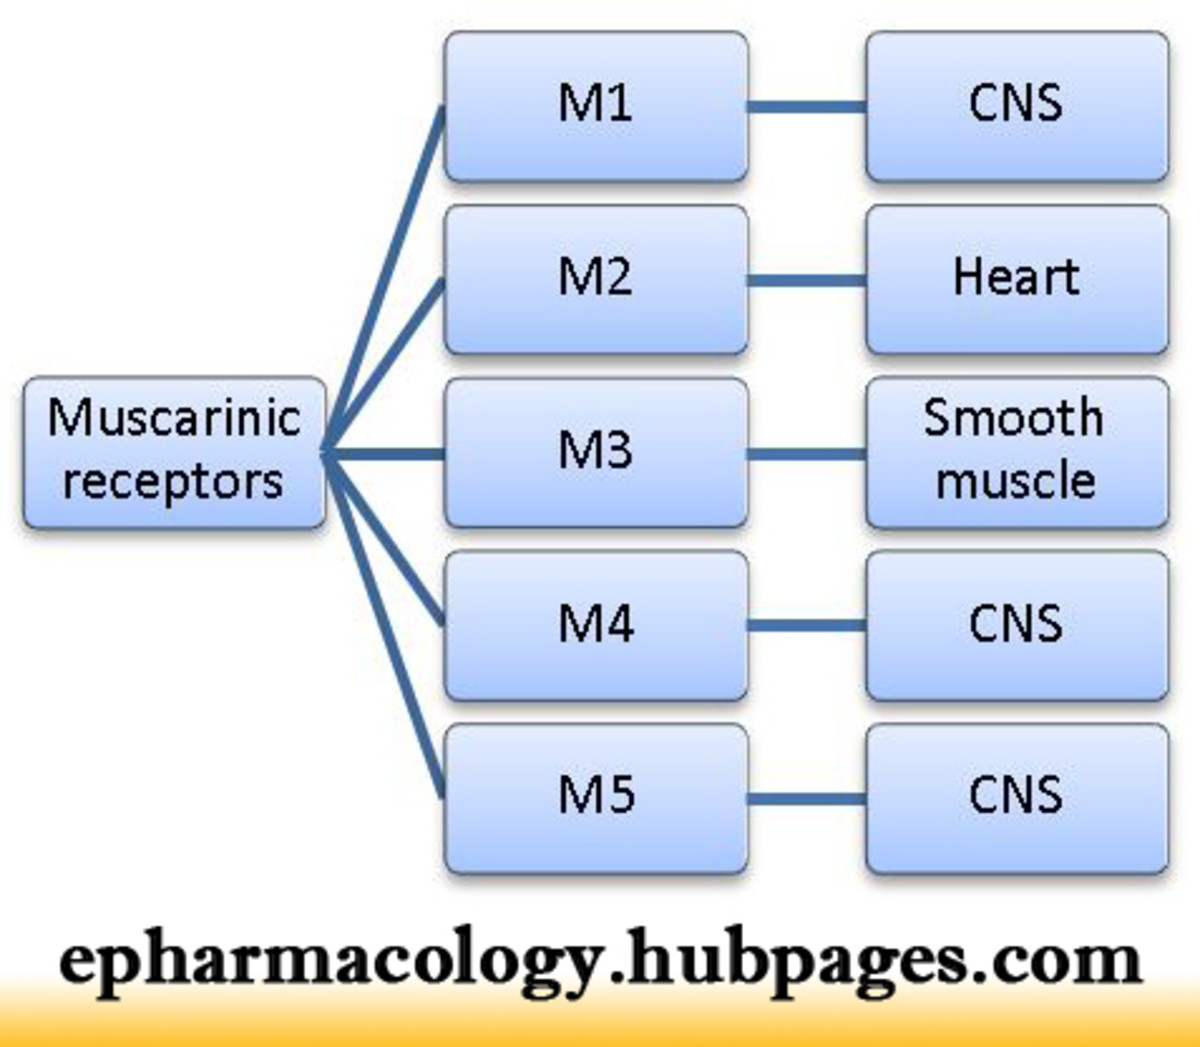 Different sub-types of muscarinic receptors and their locations